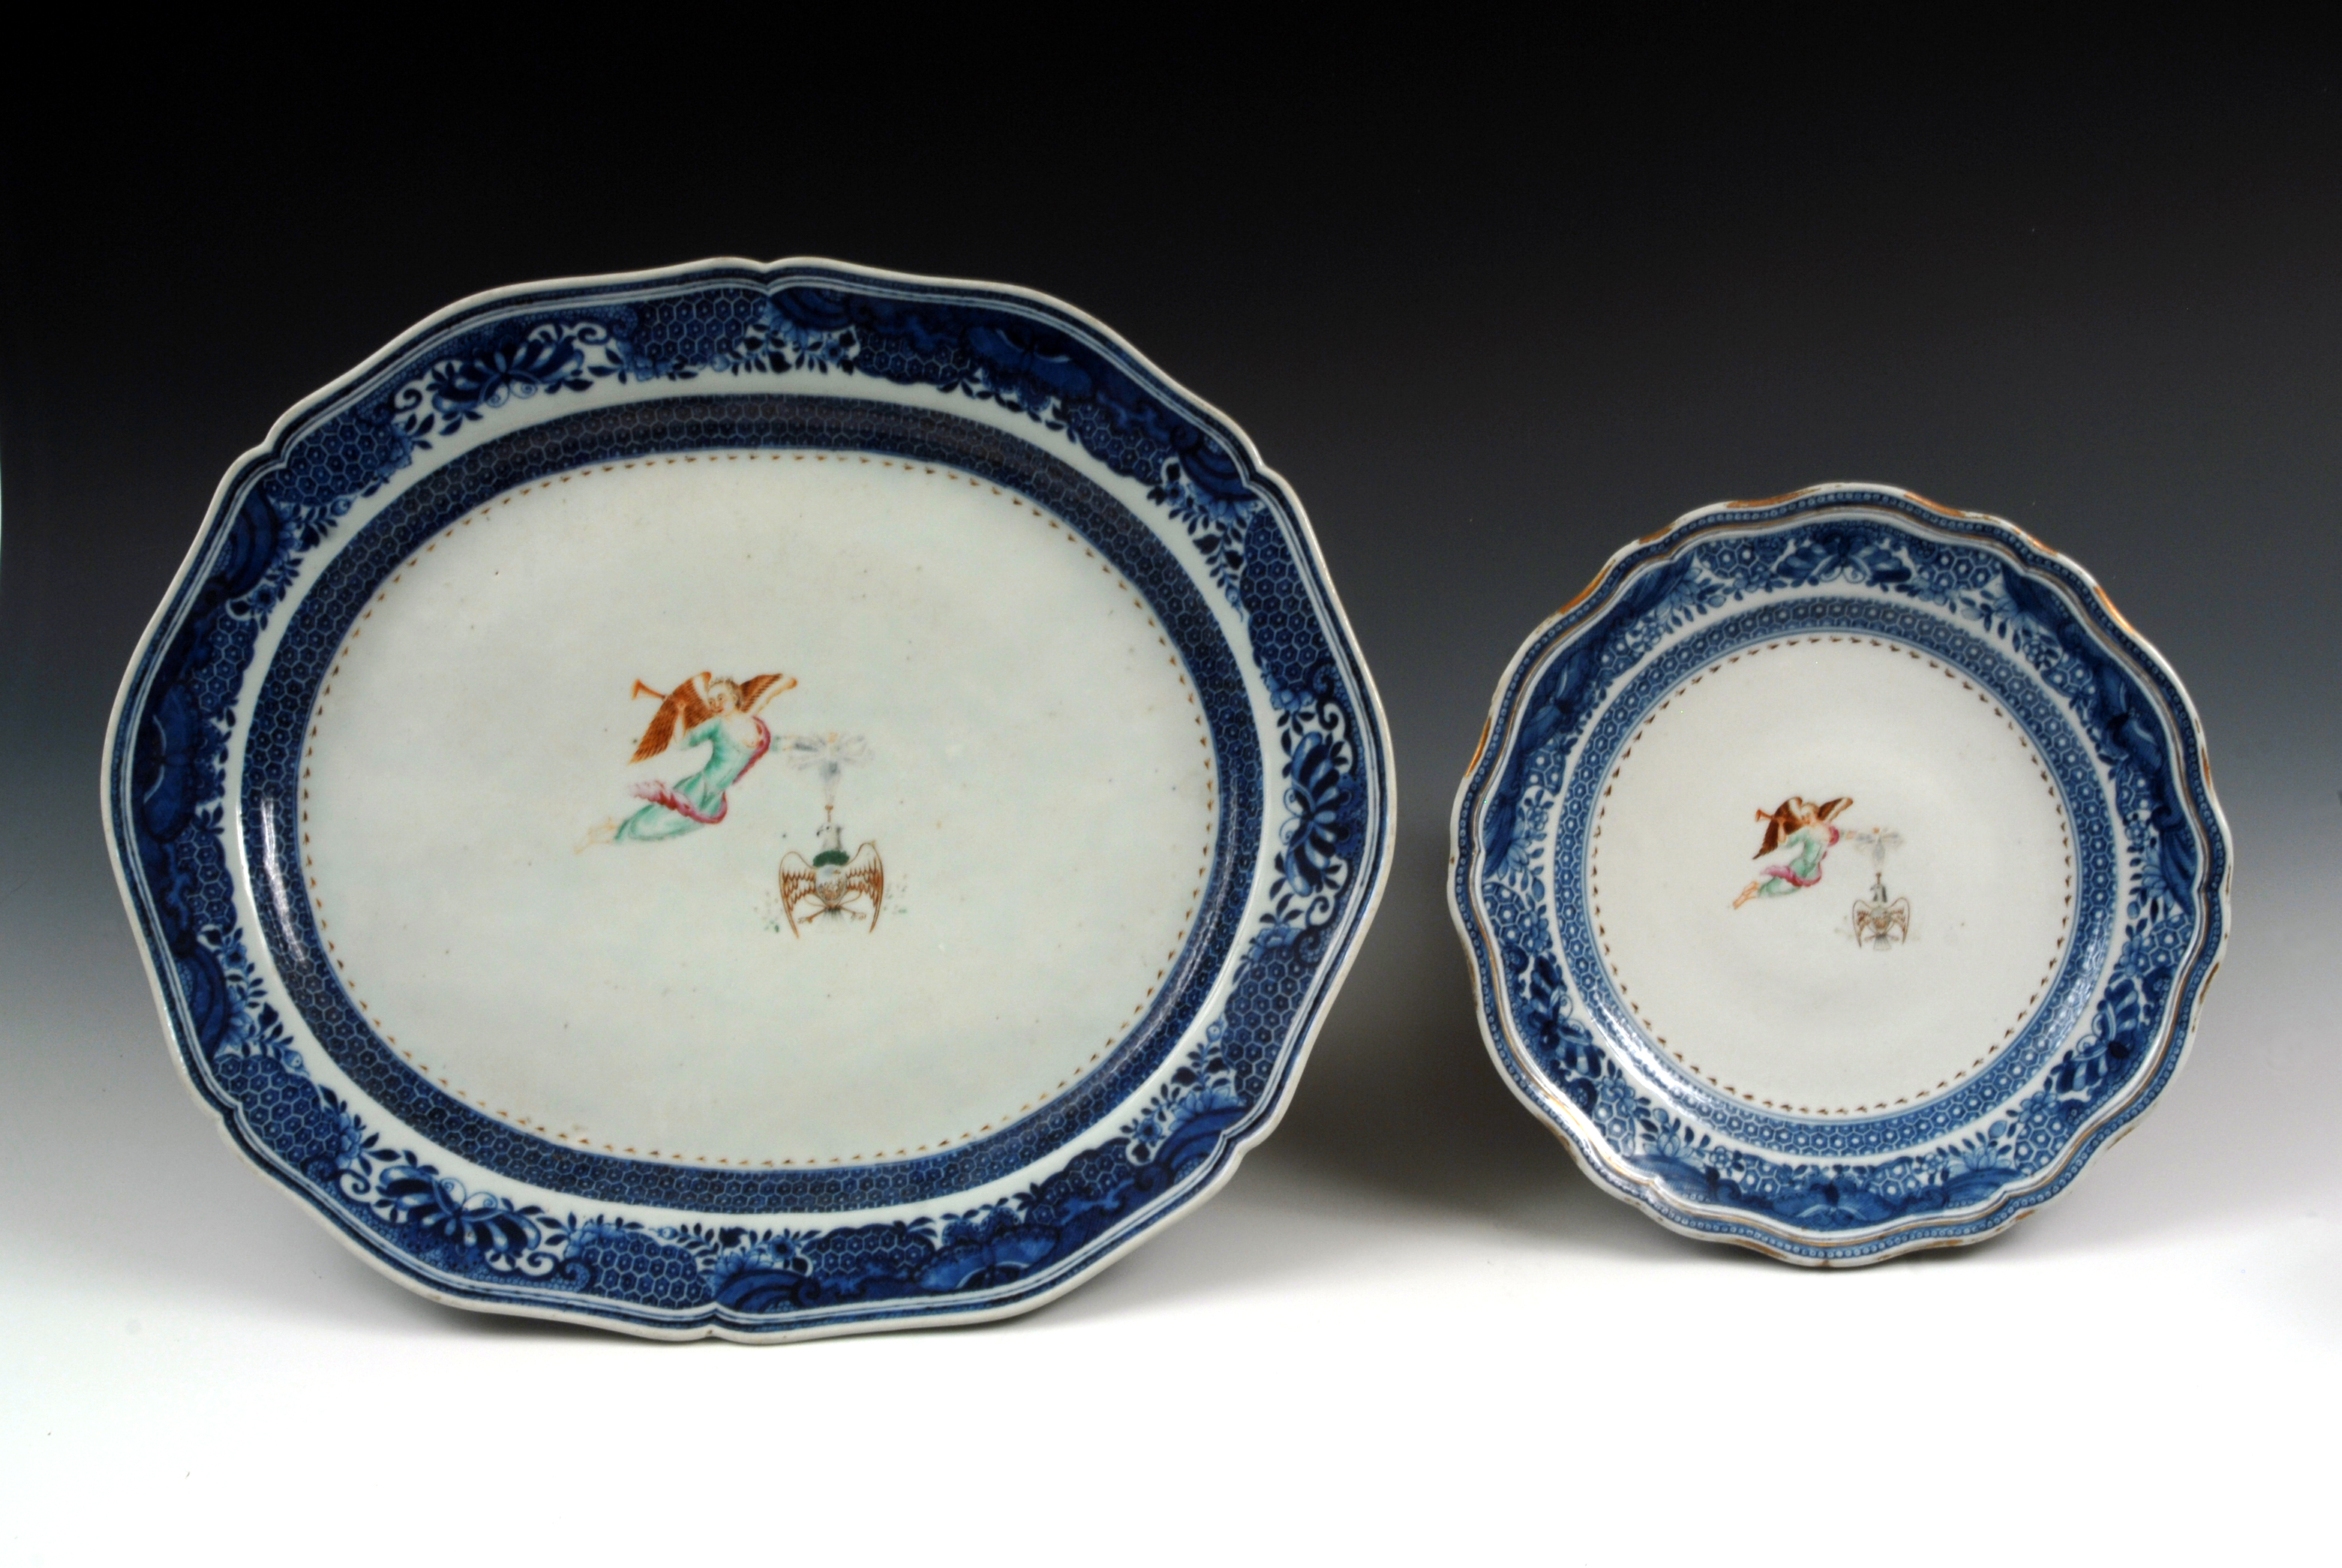 Society of the Cincinnati platter and dinner plate owned by George Washington, ca. 1784-1785